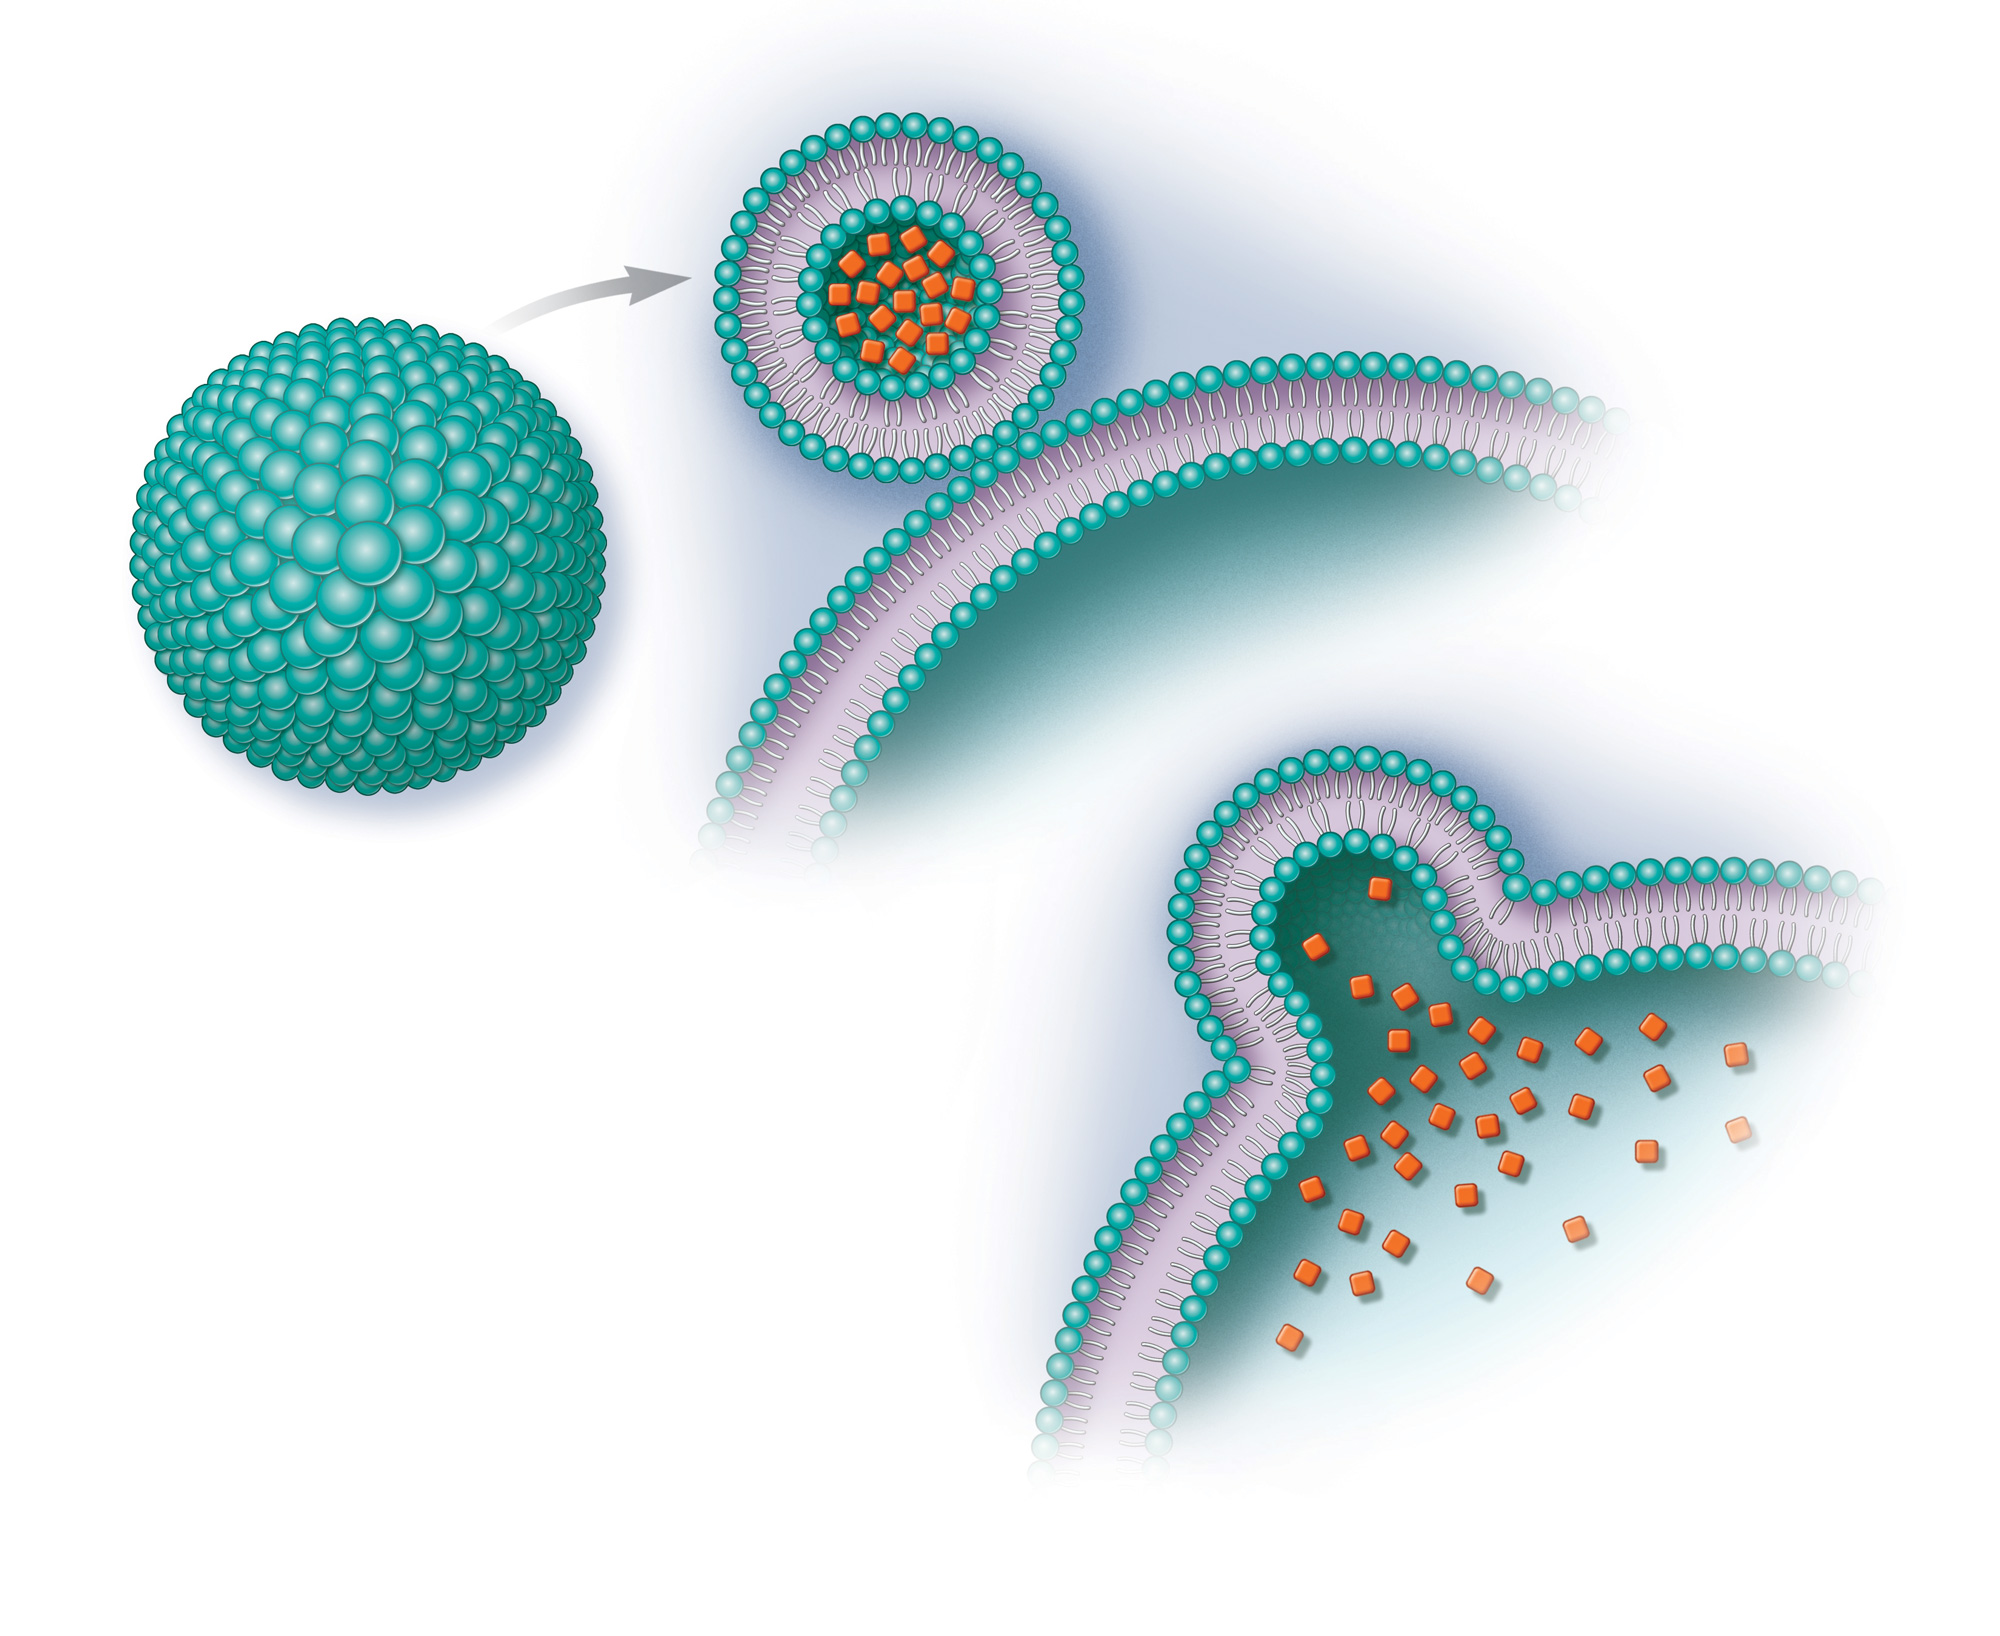 Liposome encapsulation